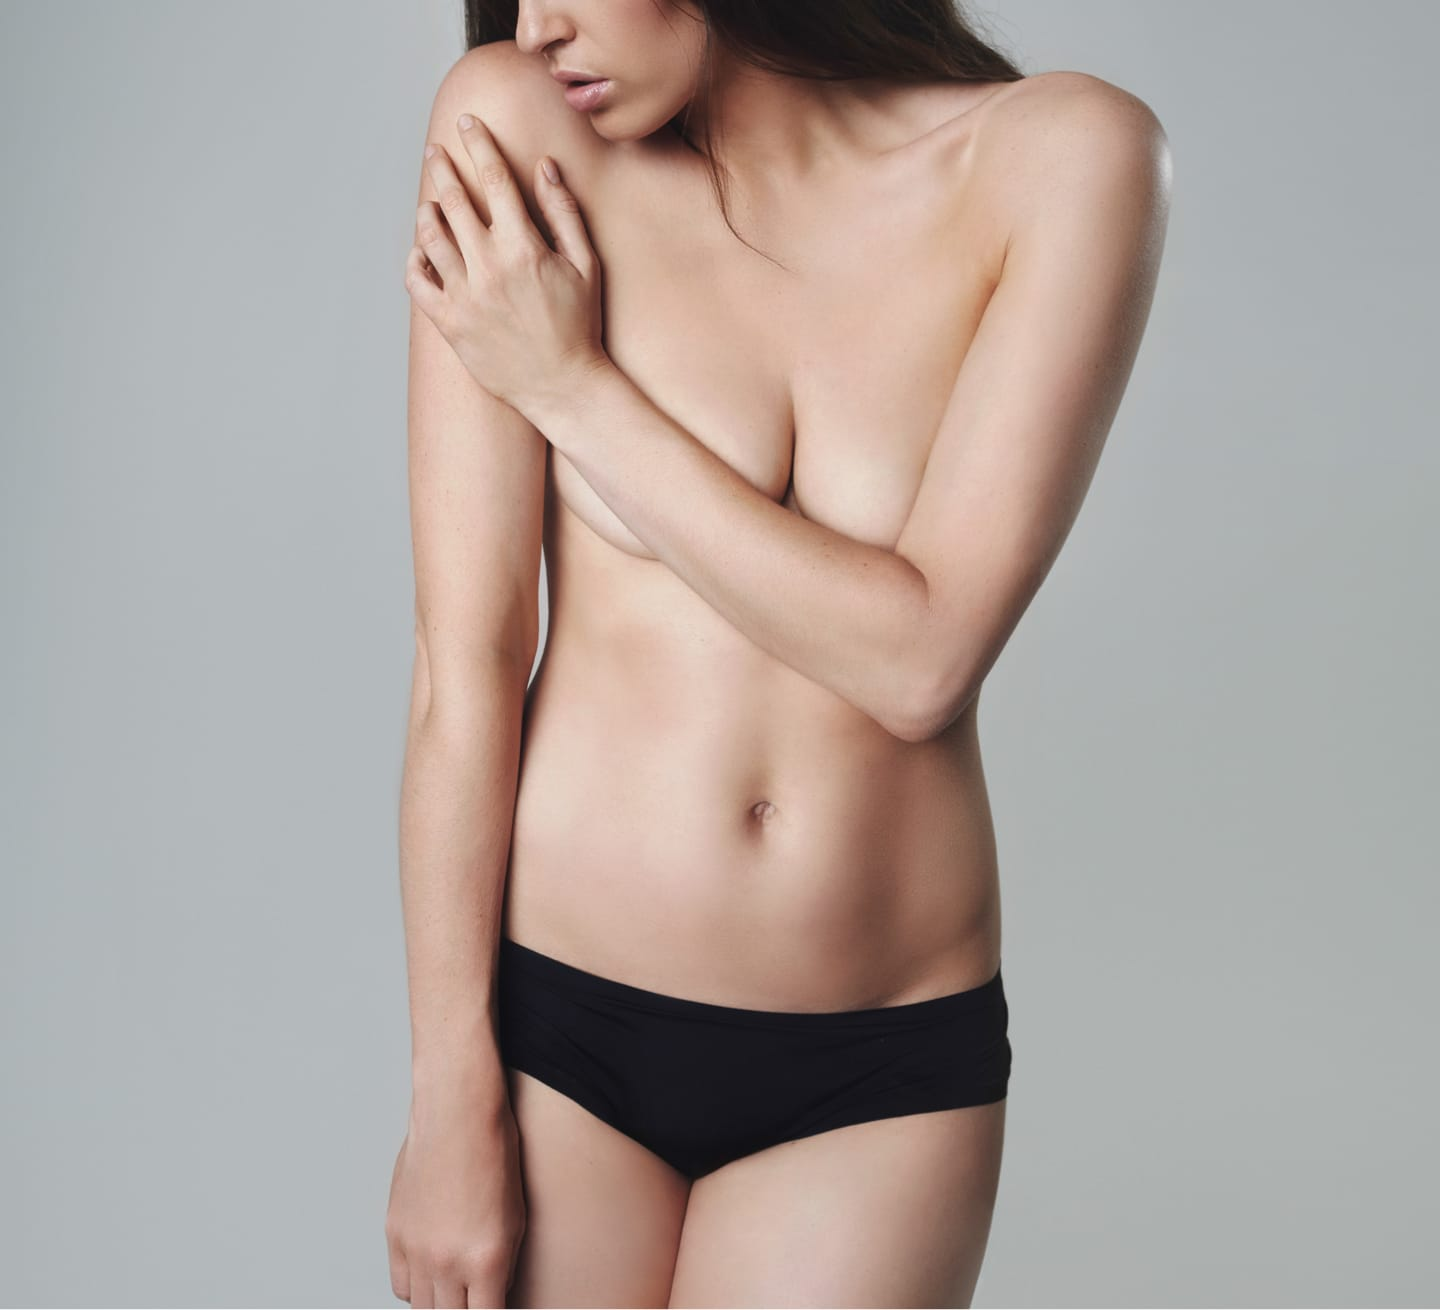 photo of woman in underwear covering breasts